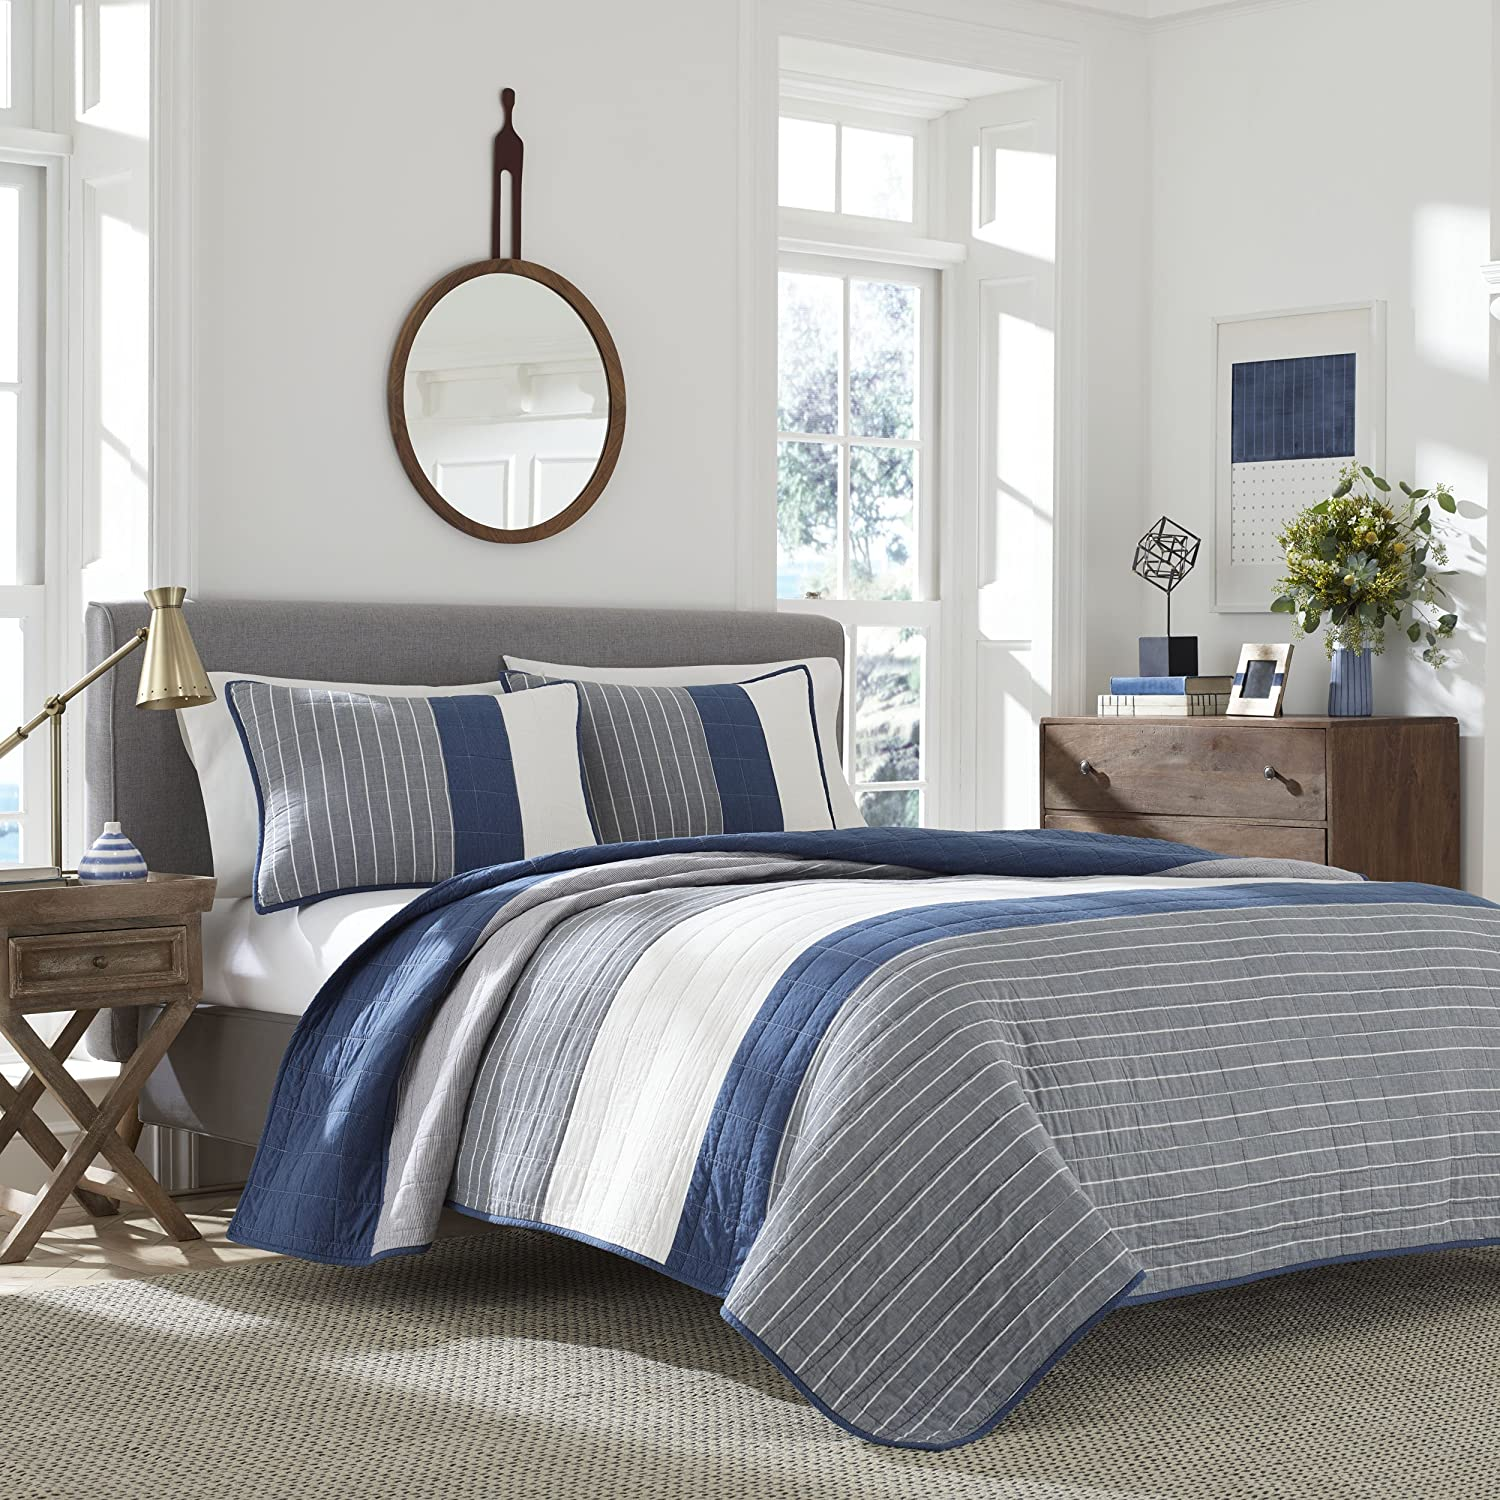 Nautica Swale Quilt, Full/Queen, Dark Blue